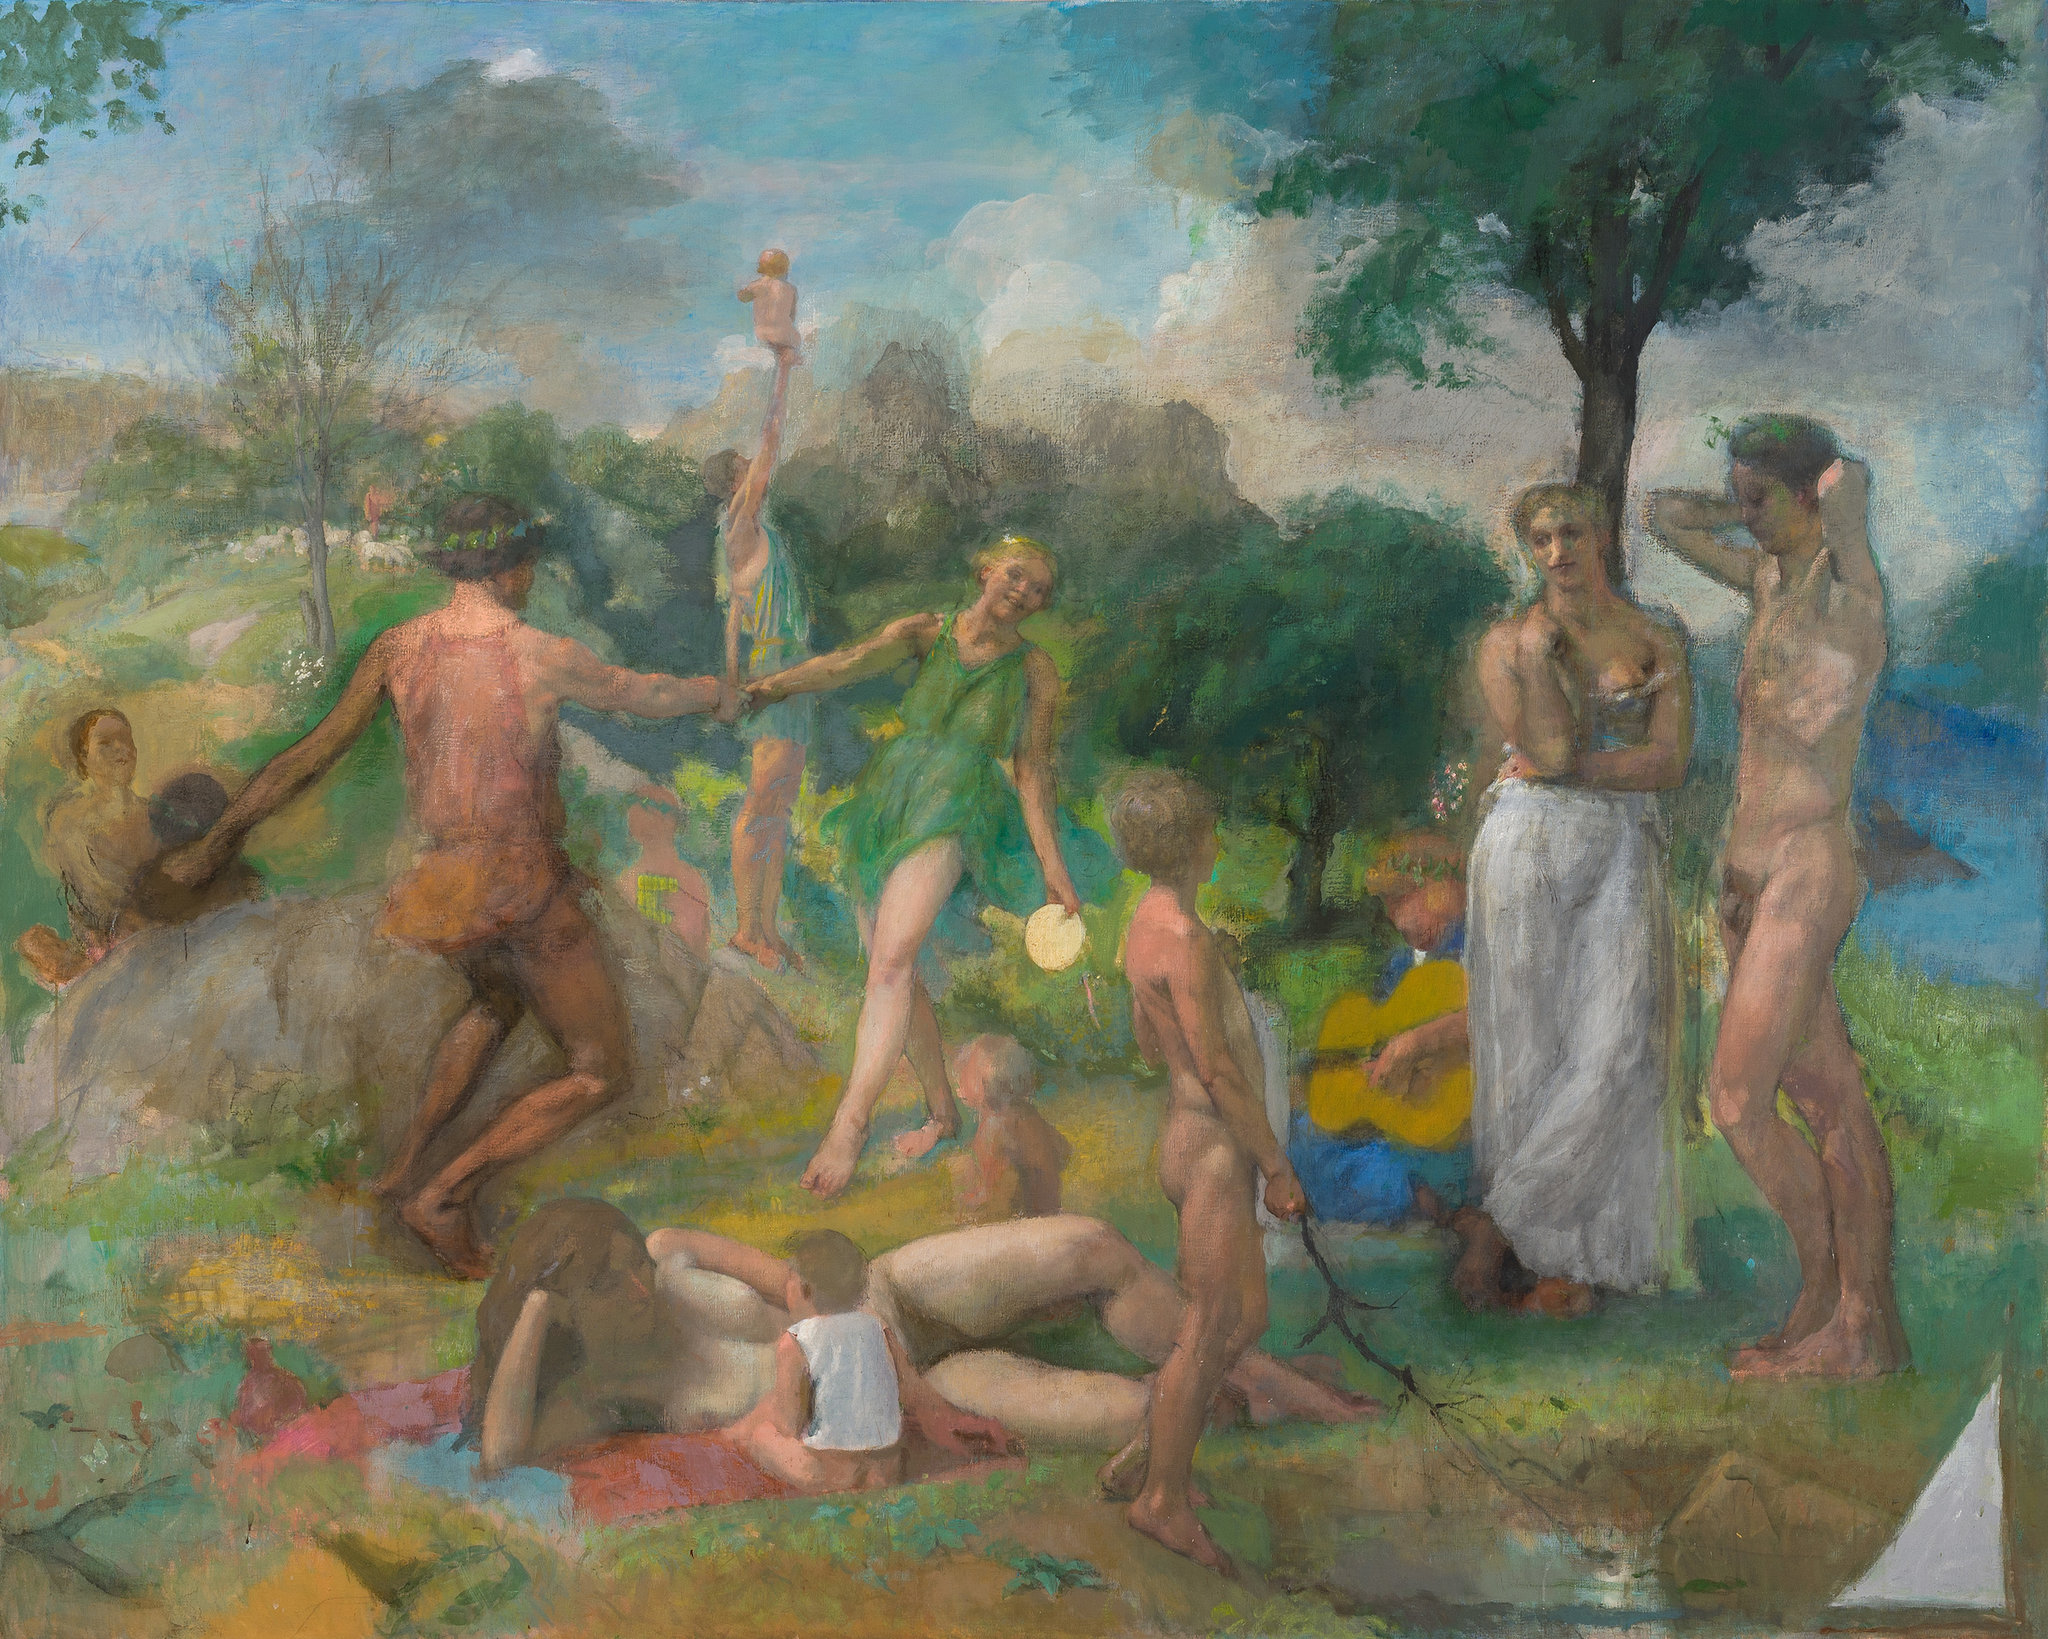 Lennart Anderson, Idyll III, 1979-2011 (courtesy of the Estate of Lennart Anders